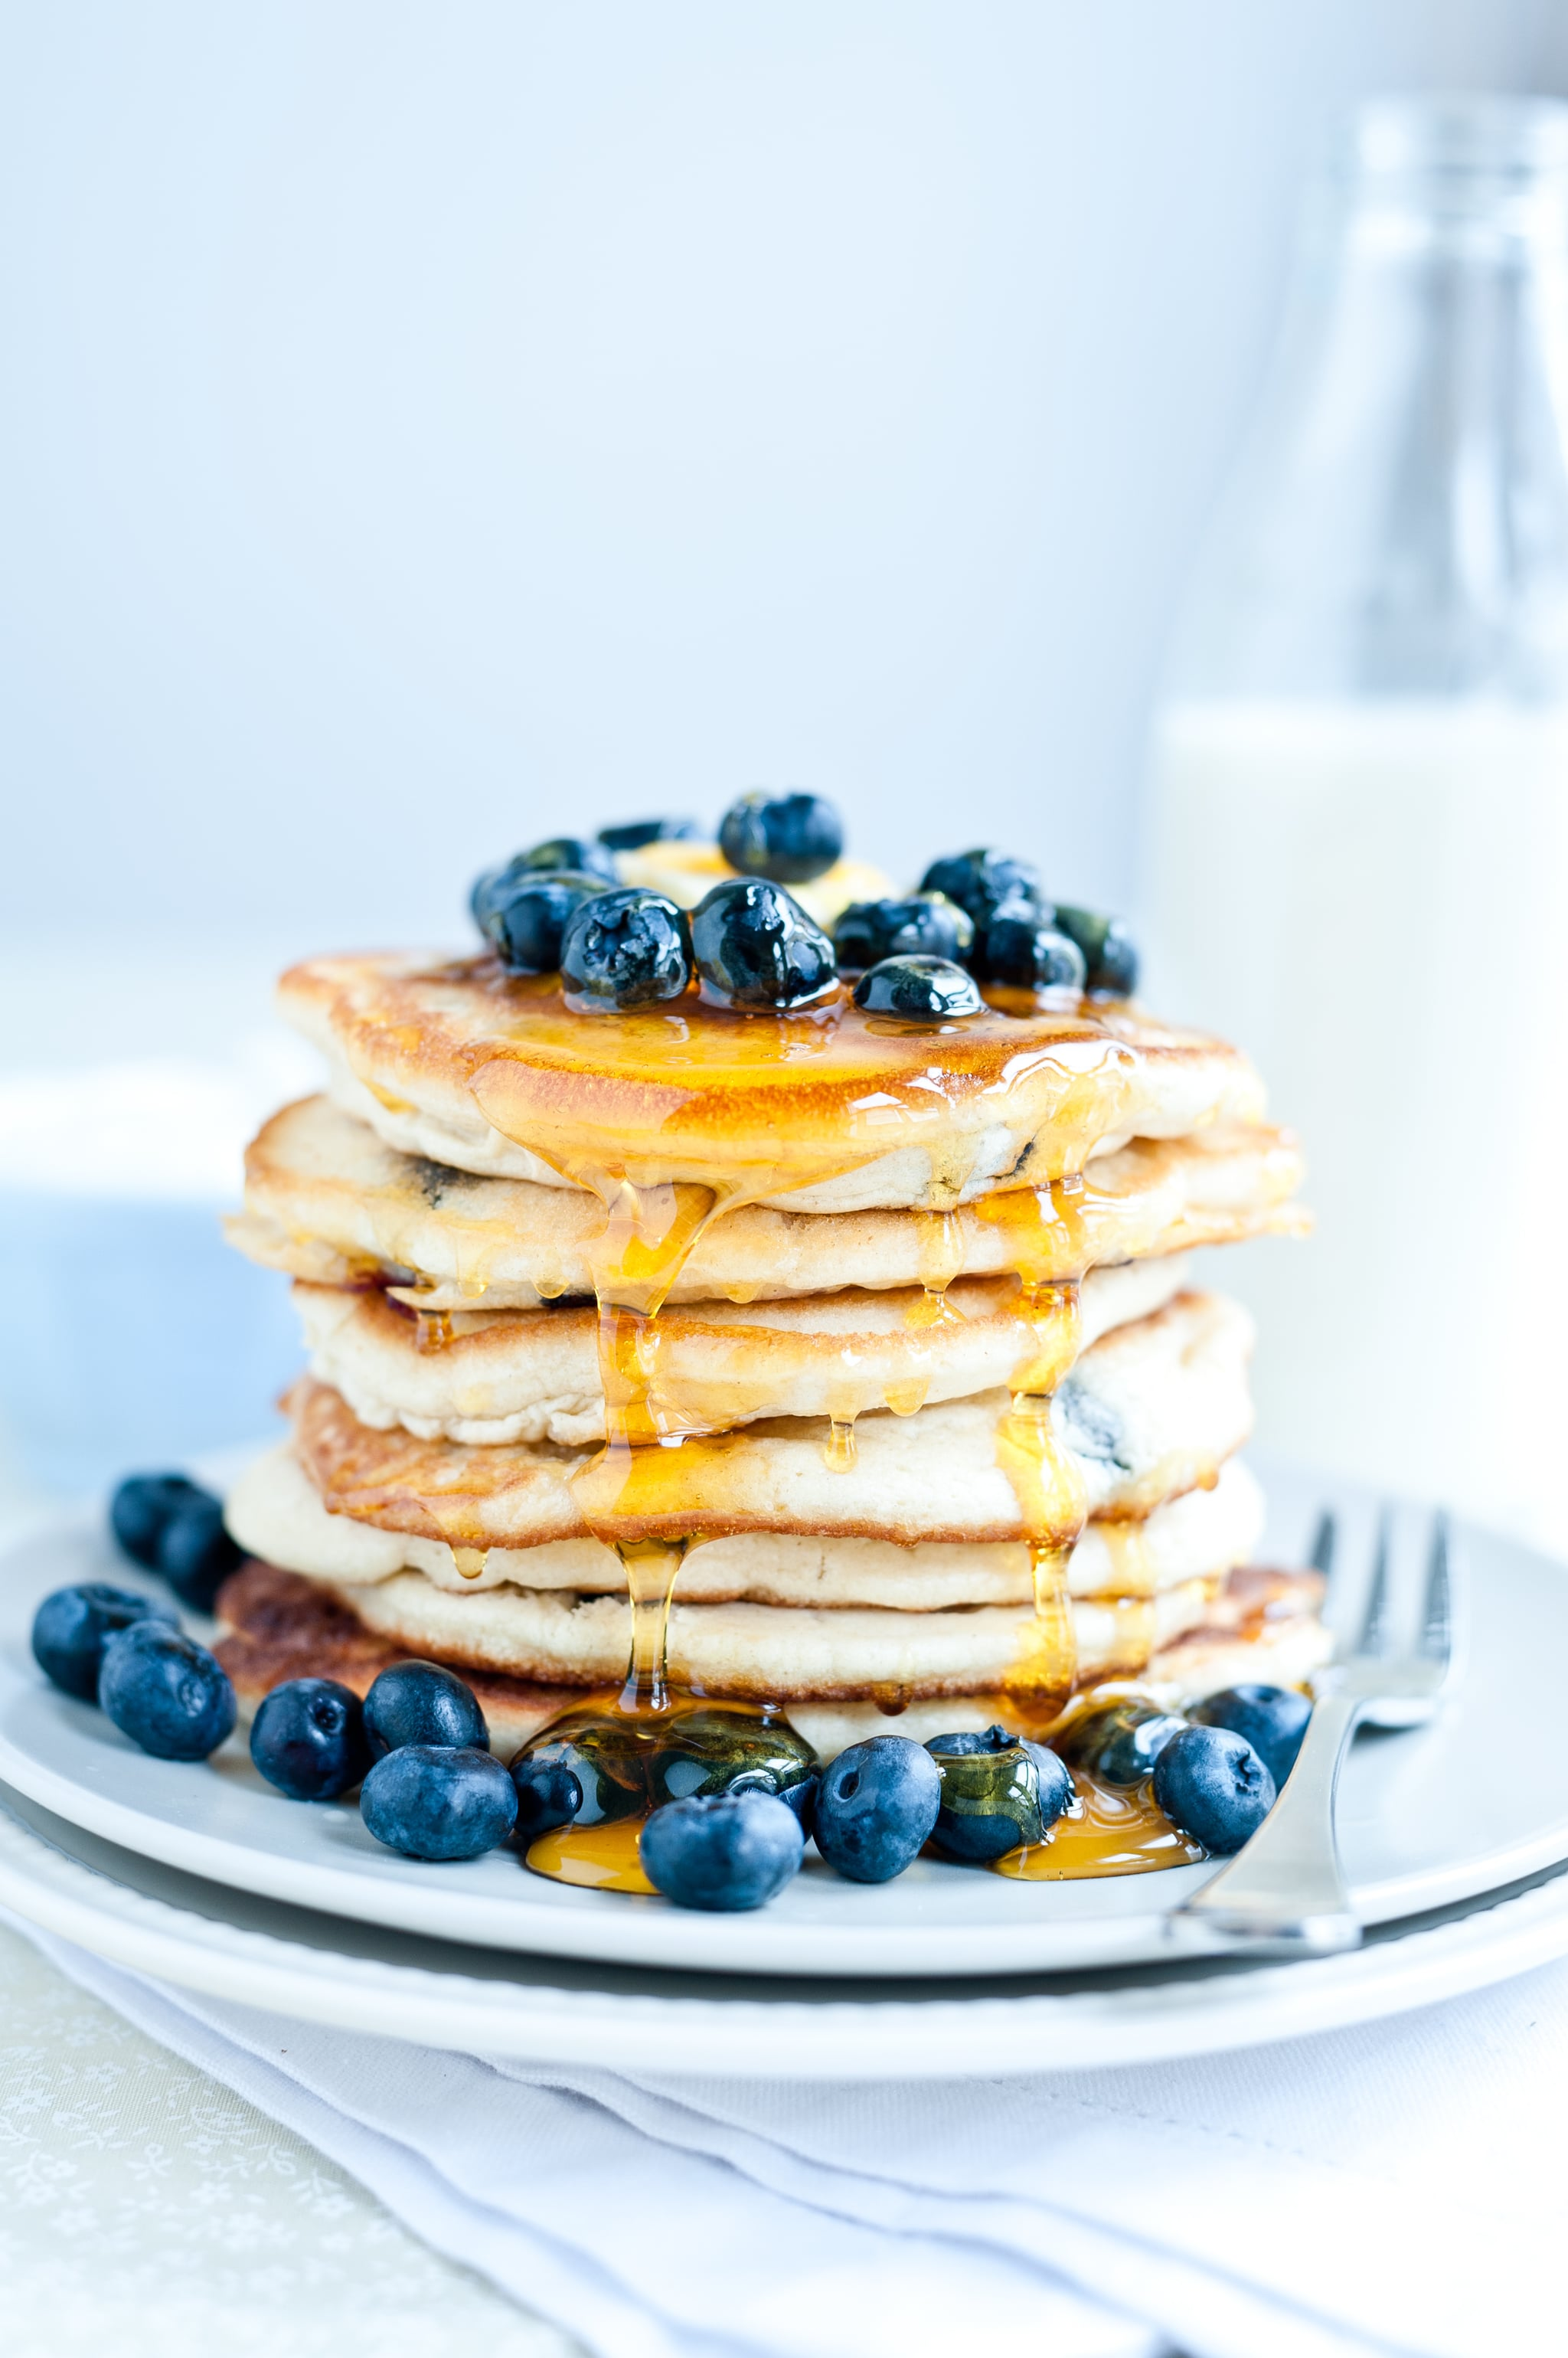 Blueberry pancakes with fresh blueberries and golden syrup.